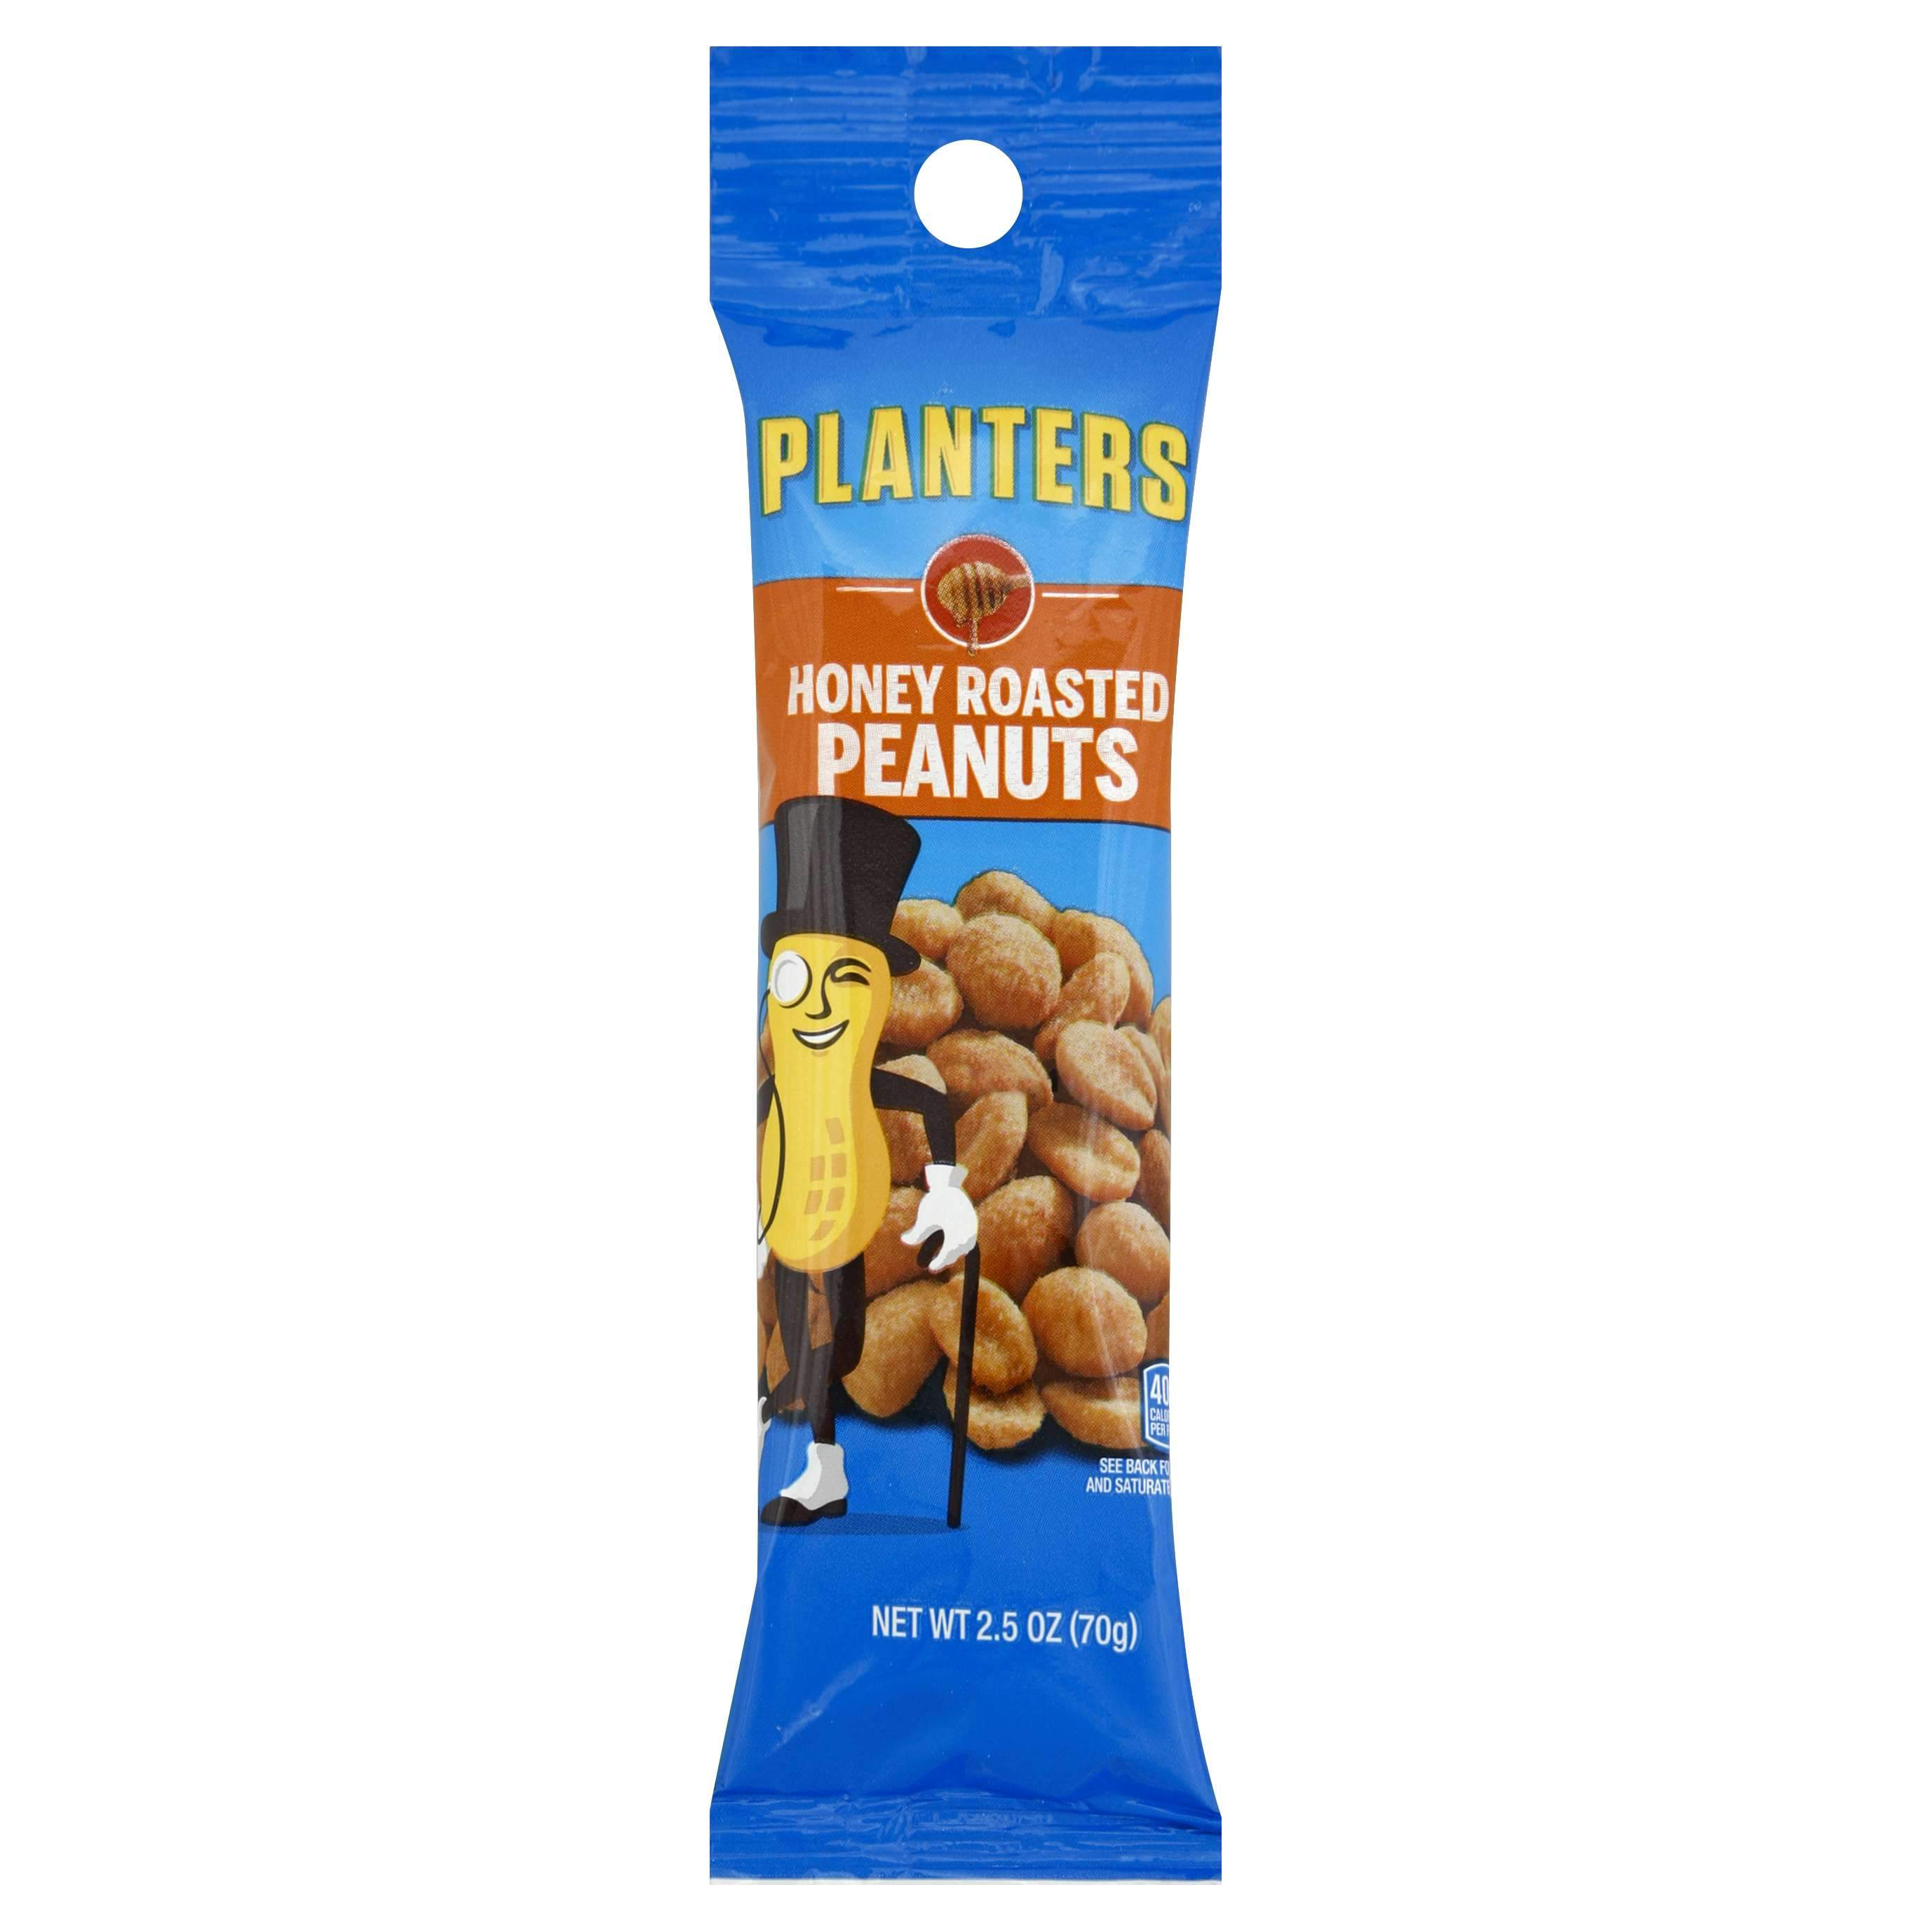 Planters Peanuts Planters Honey Roasted 2.5 Ounce